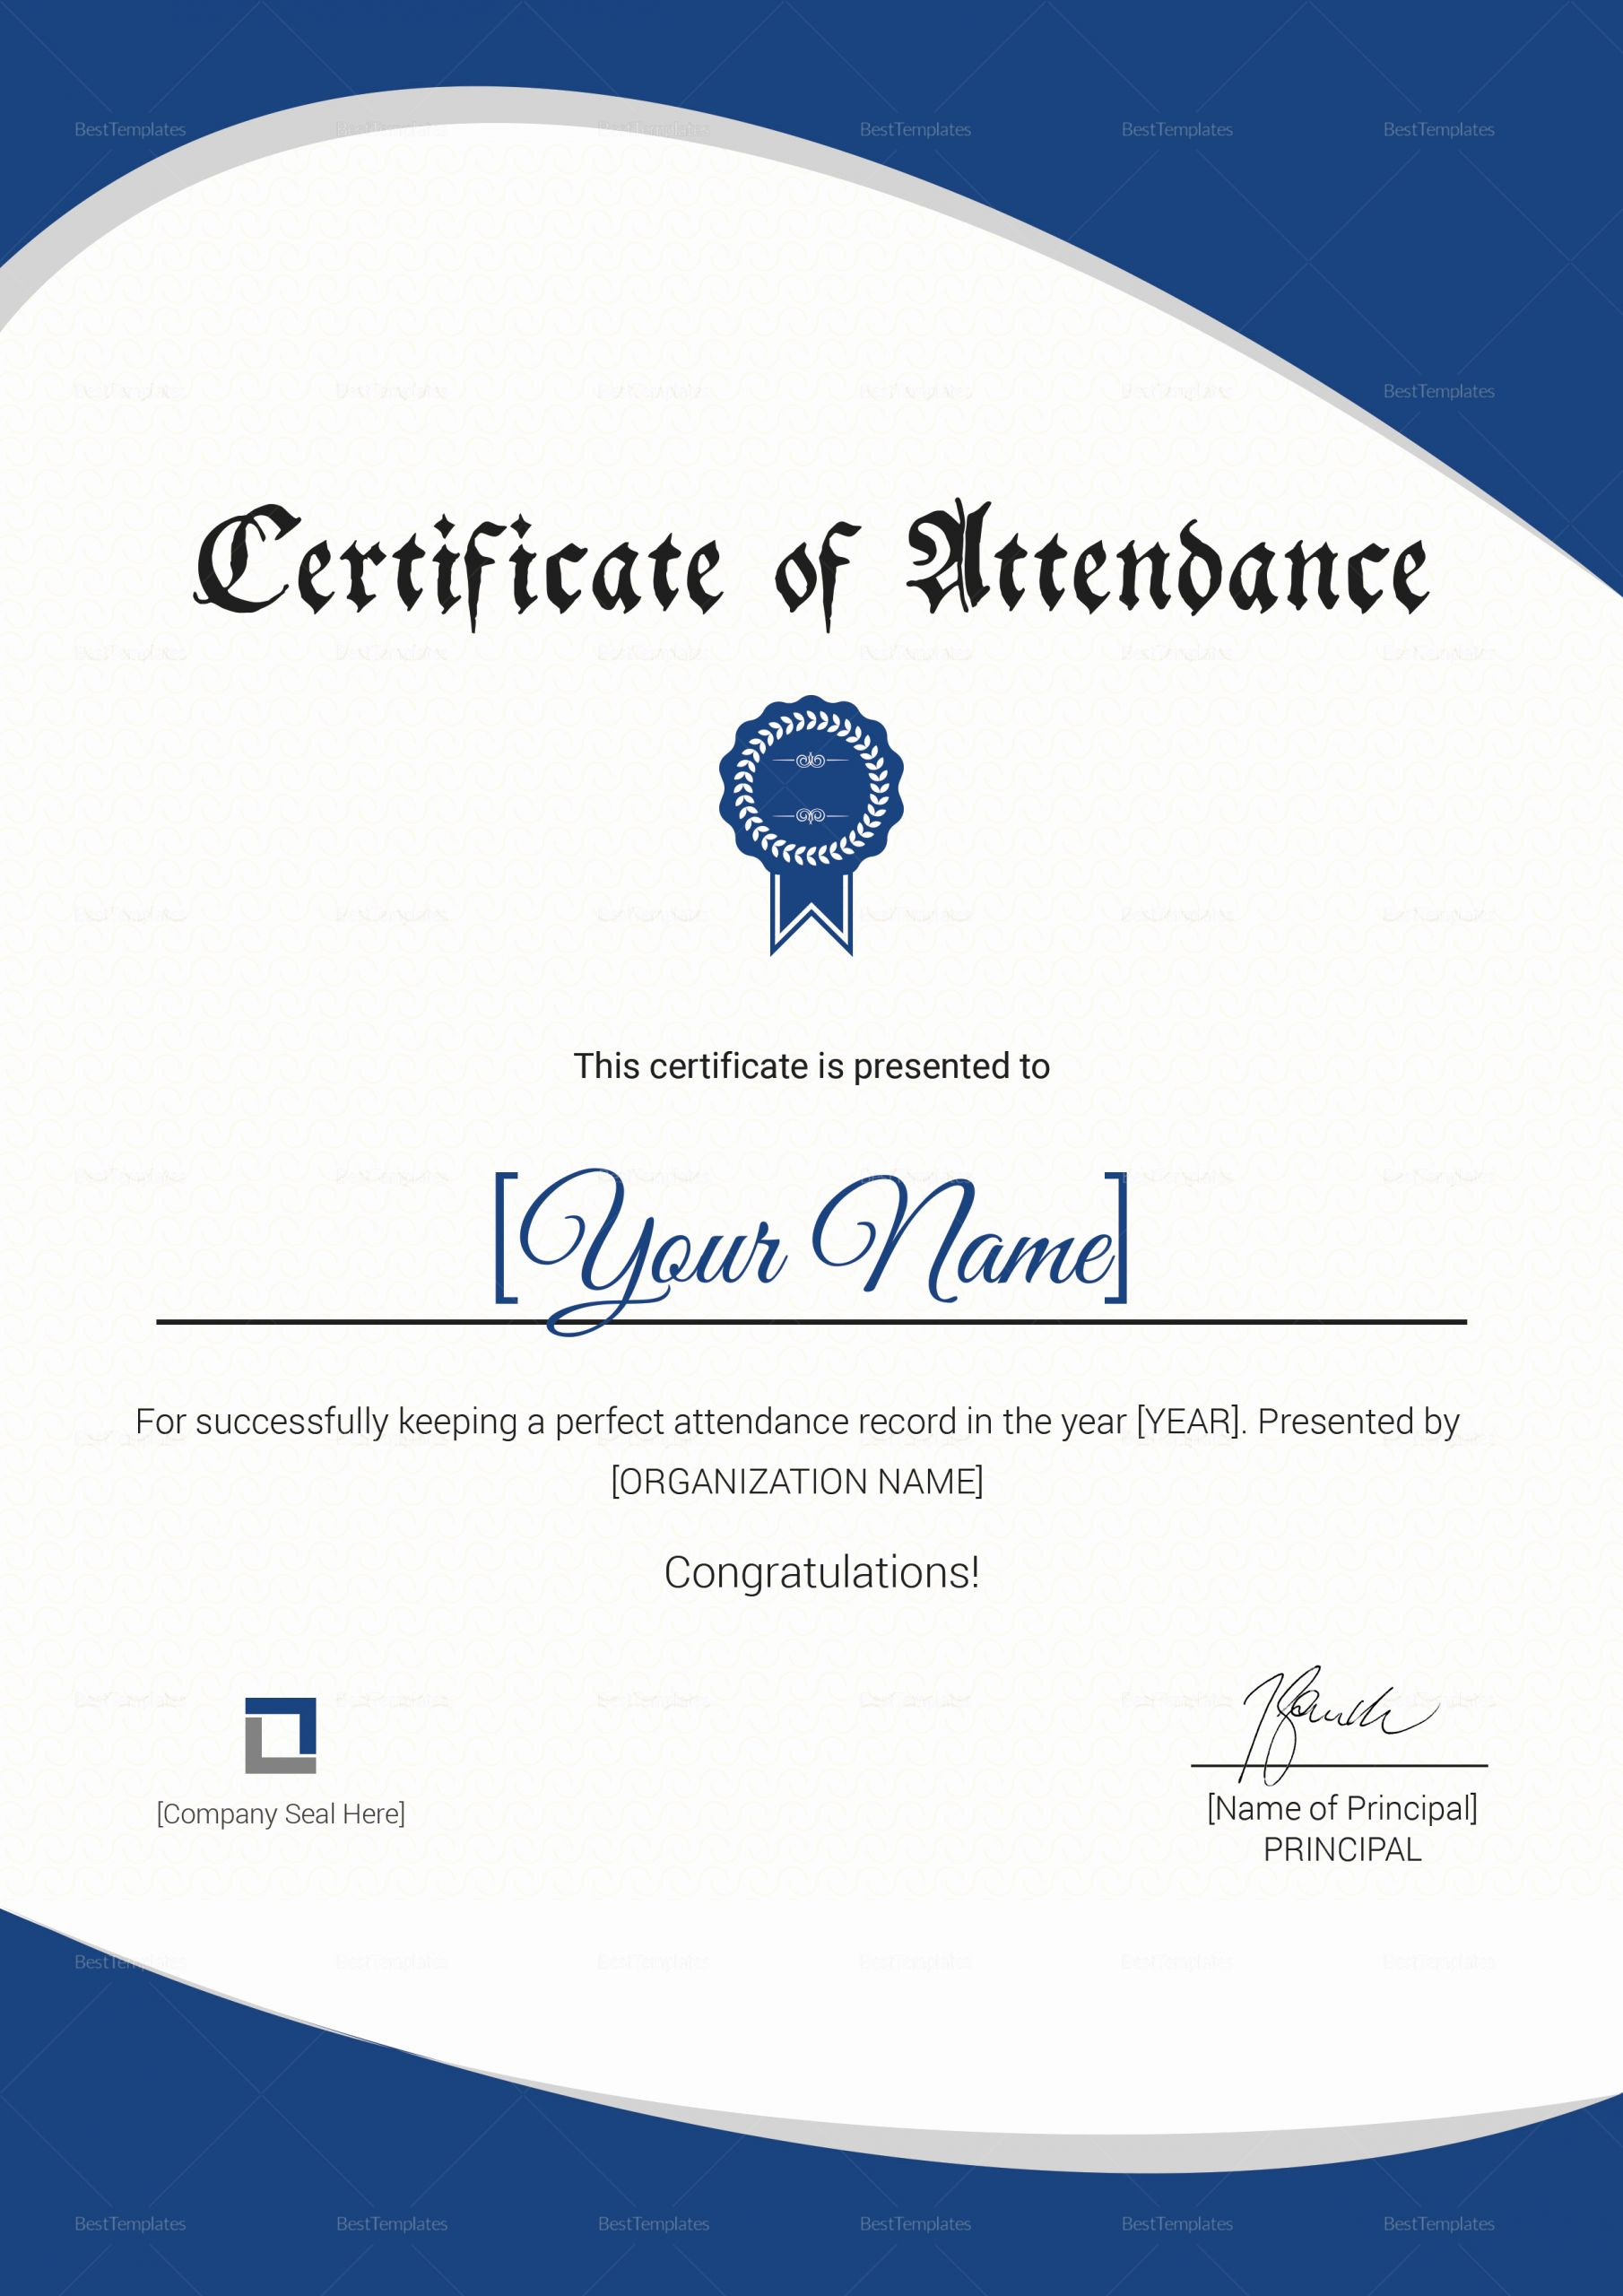 Certificate Of attendance Template Free Best Of attendance Certificate Design Template In Psd Word